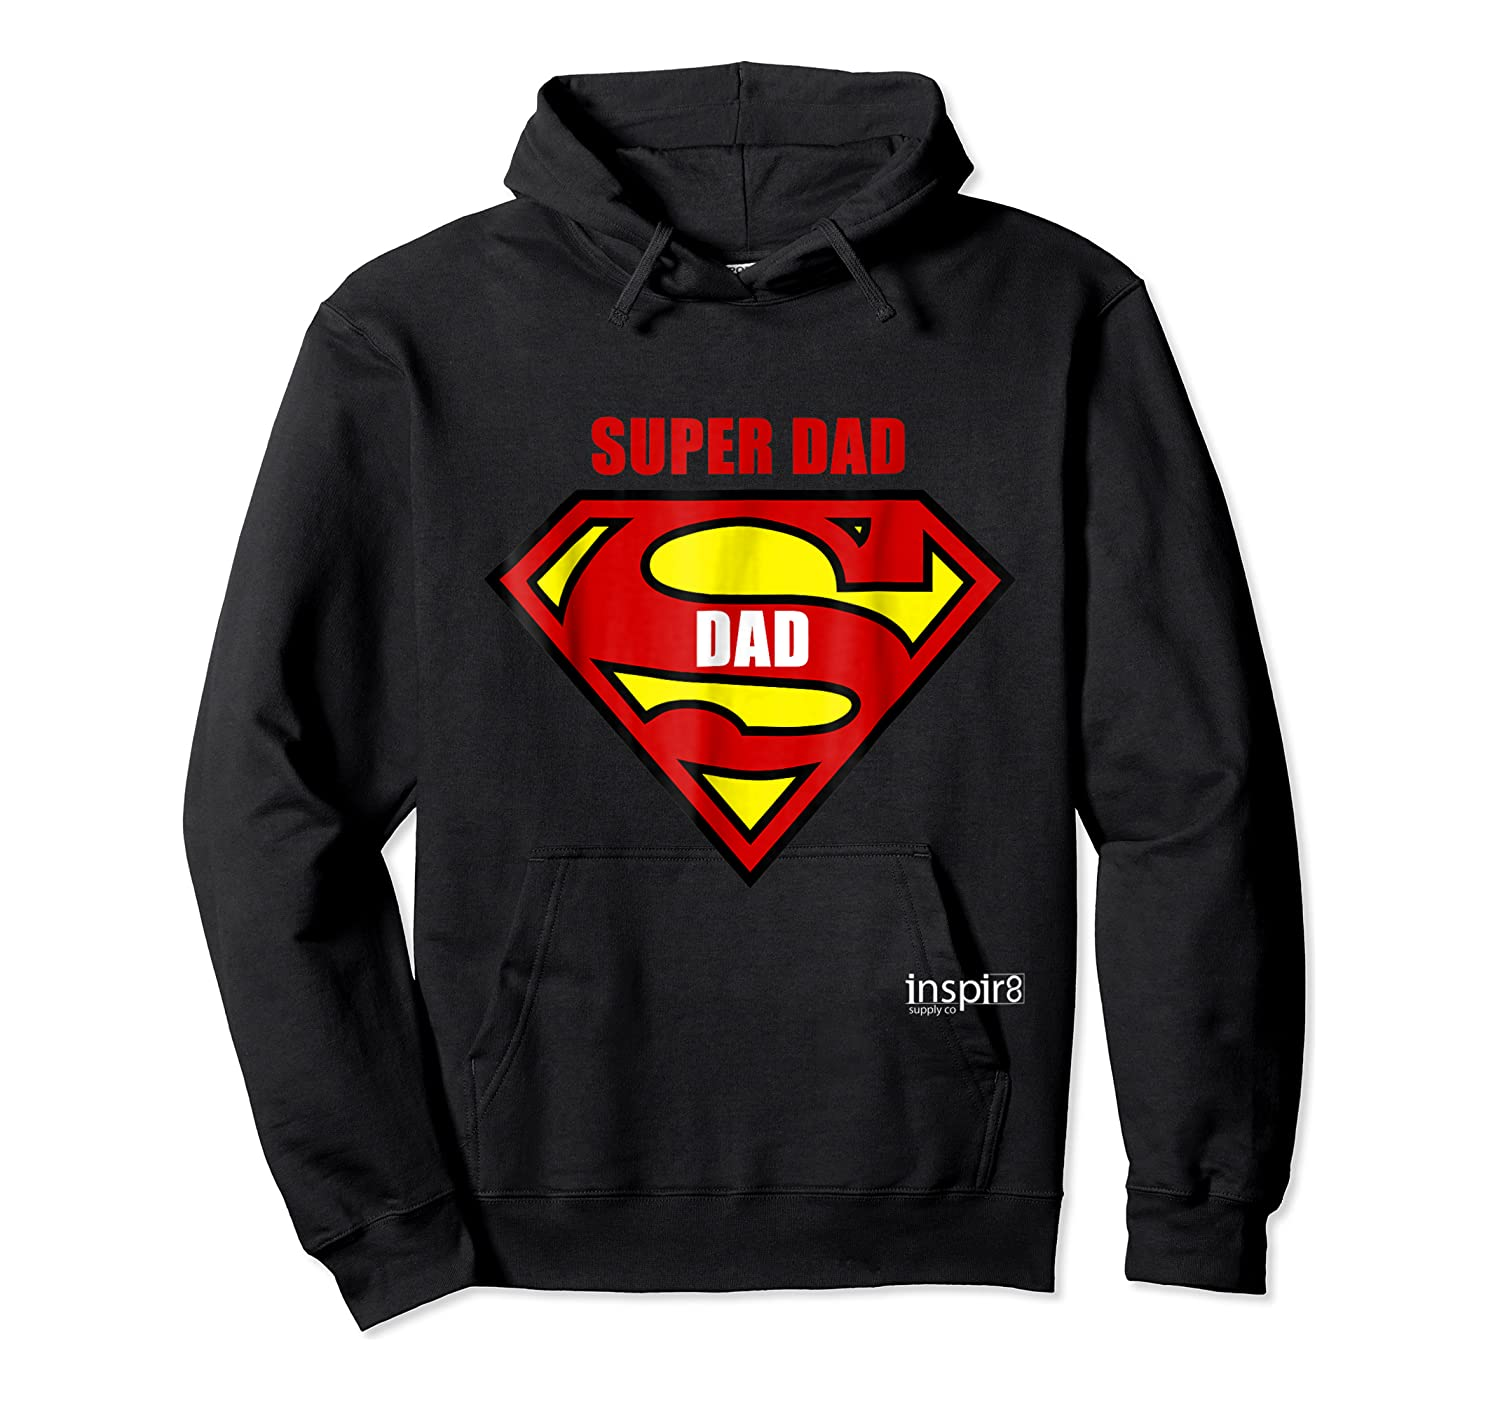 Super Dad By Inspir8 Movet Shirts Unisex Pullover Hoodie